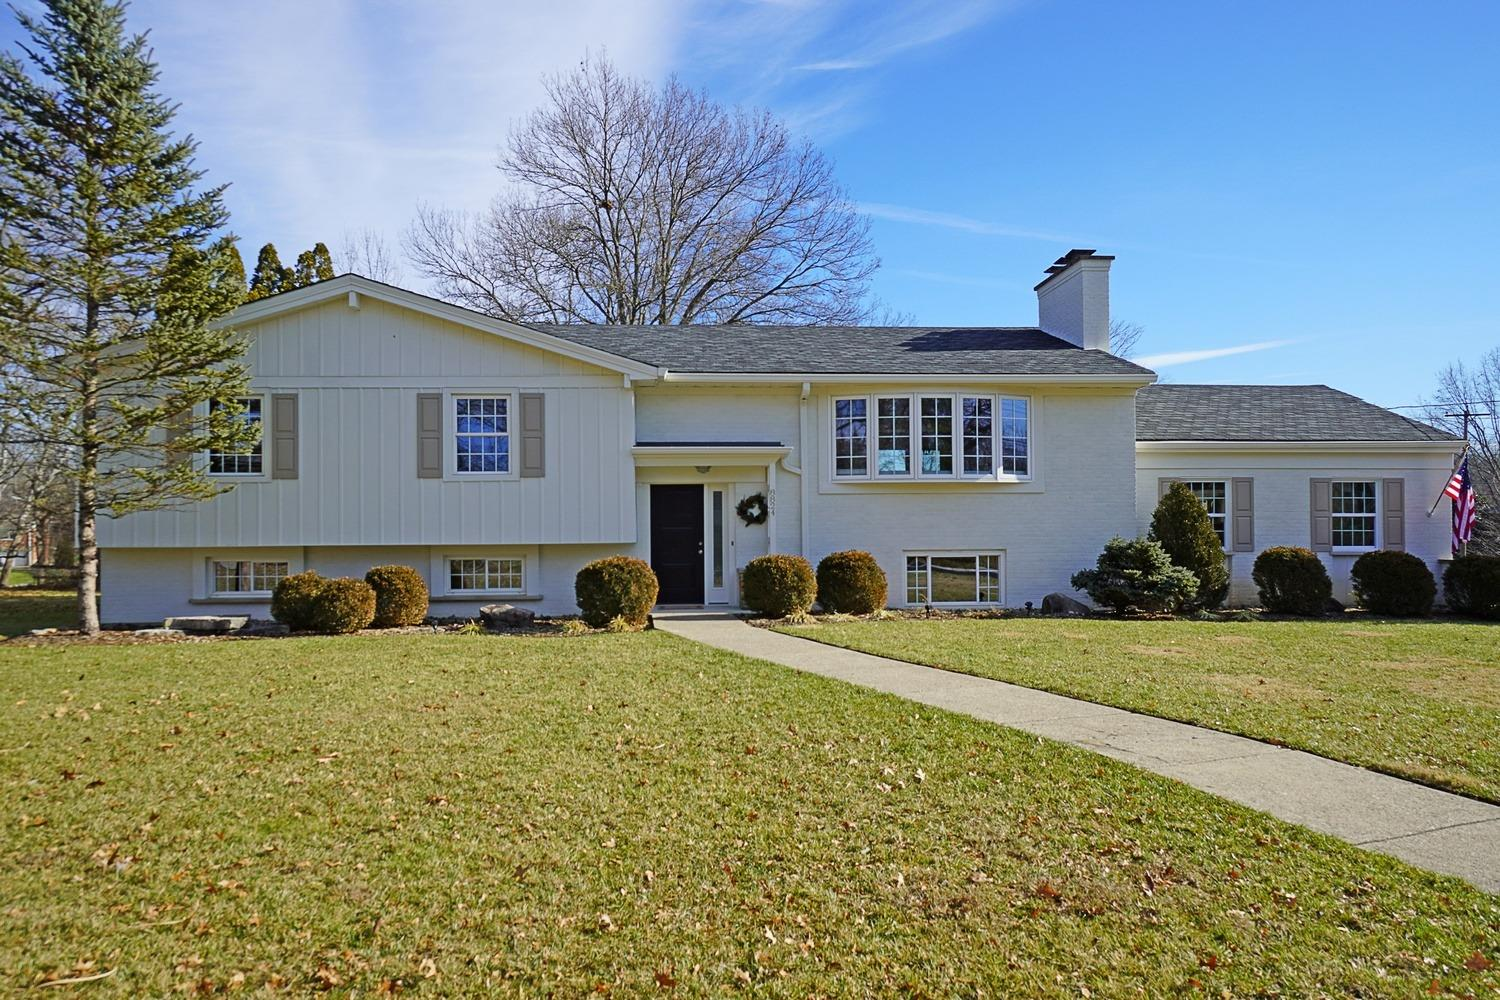 8824 Lyncris Dr Sycamore Twp OH